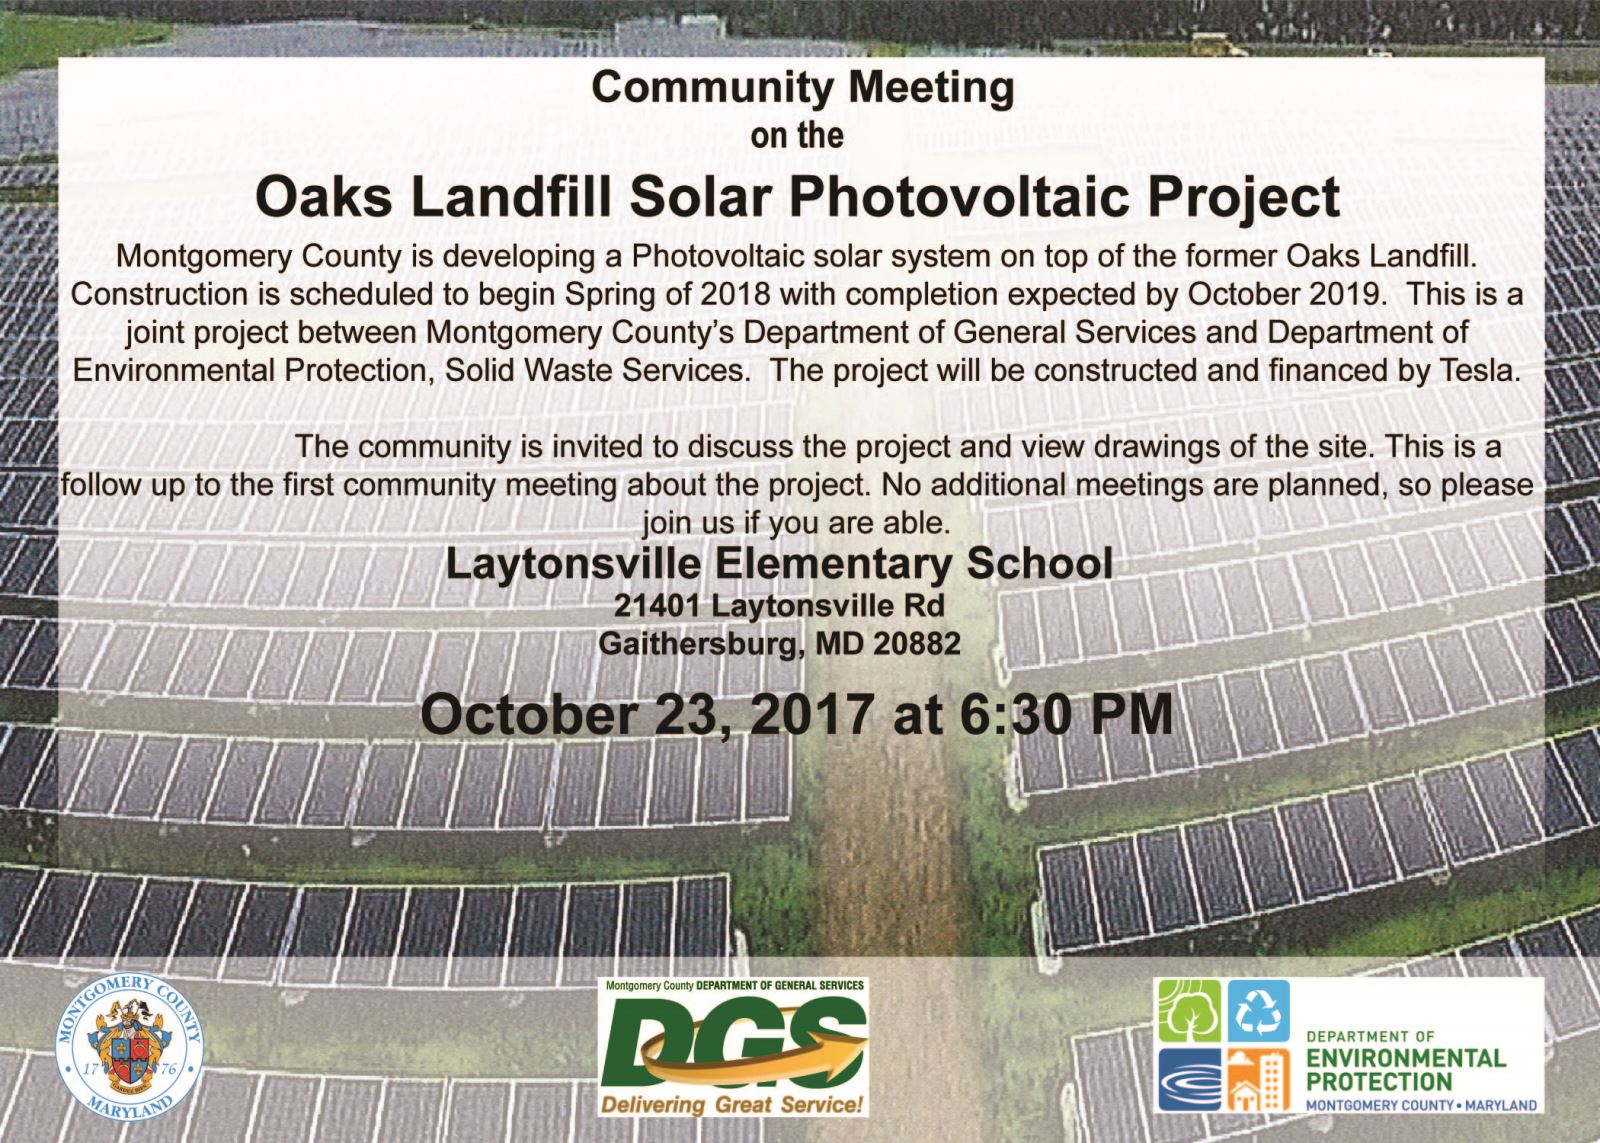 Community Meeting on Oaks Landfill Solar Project